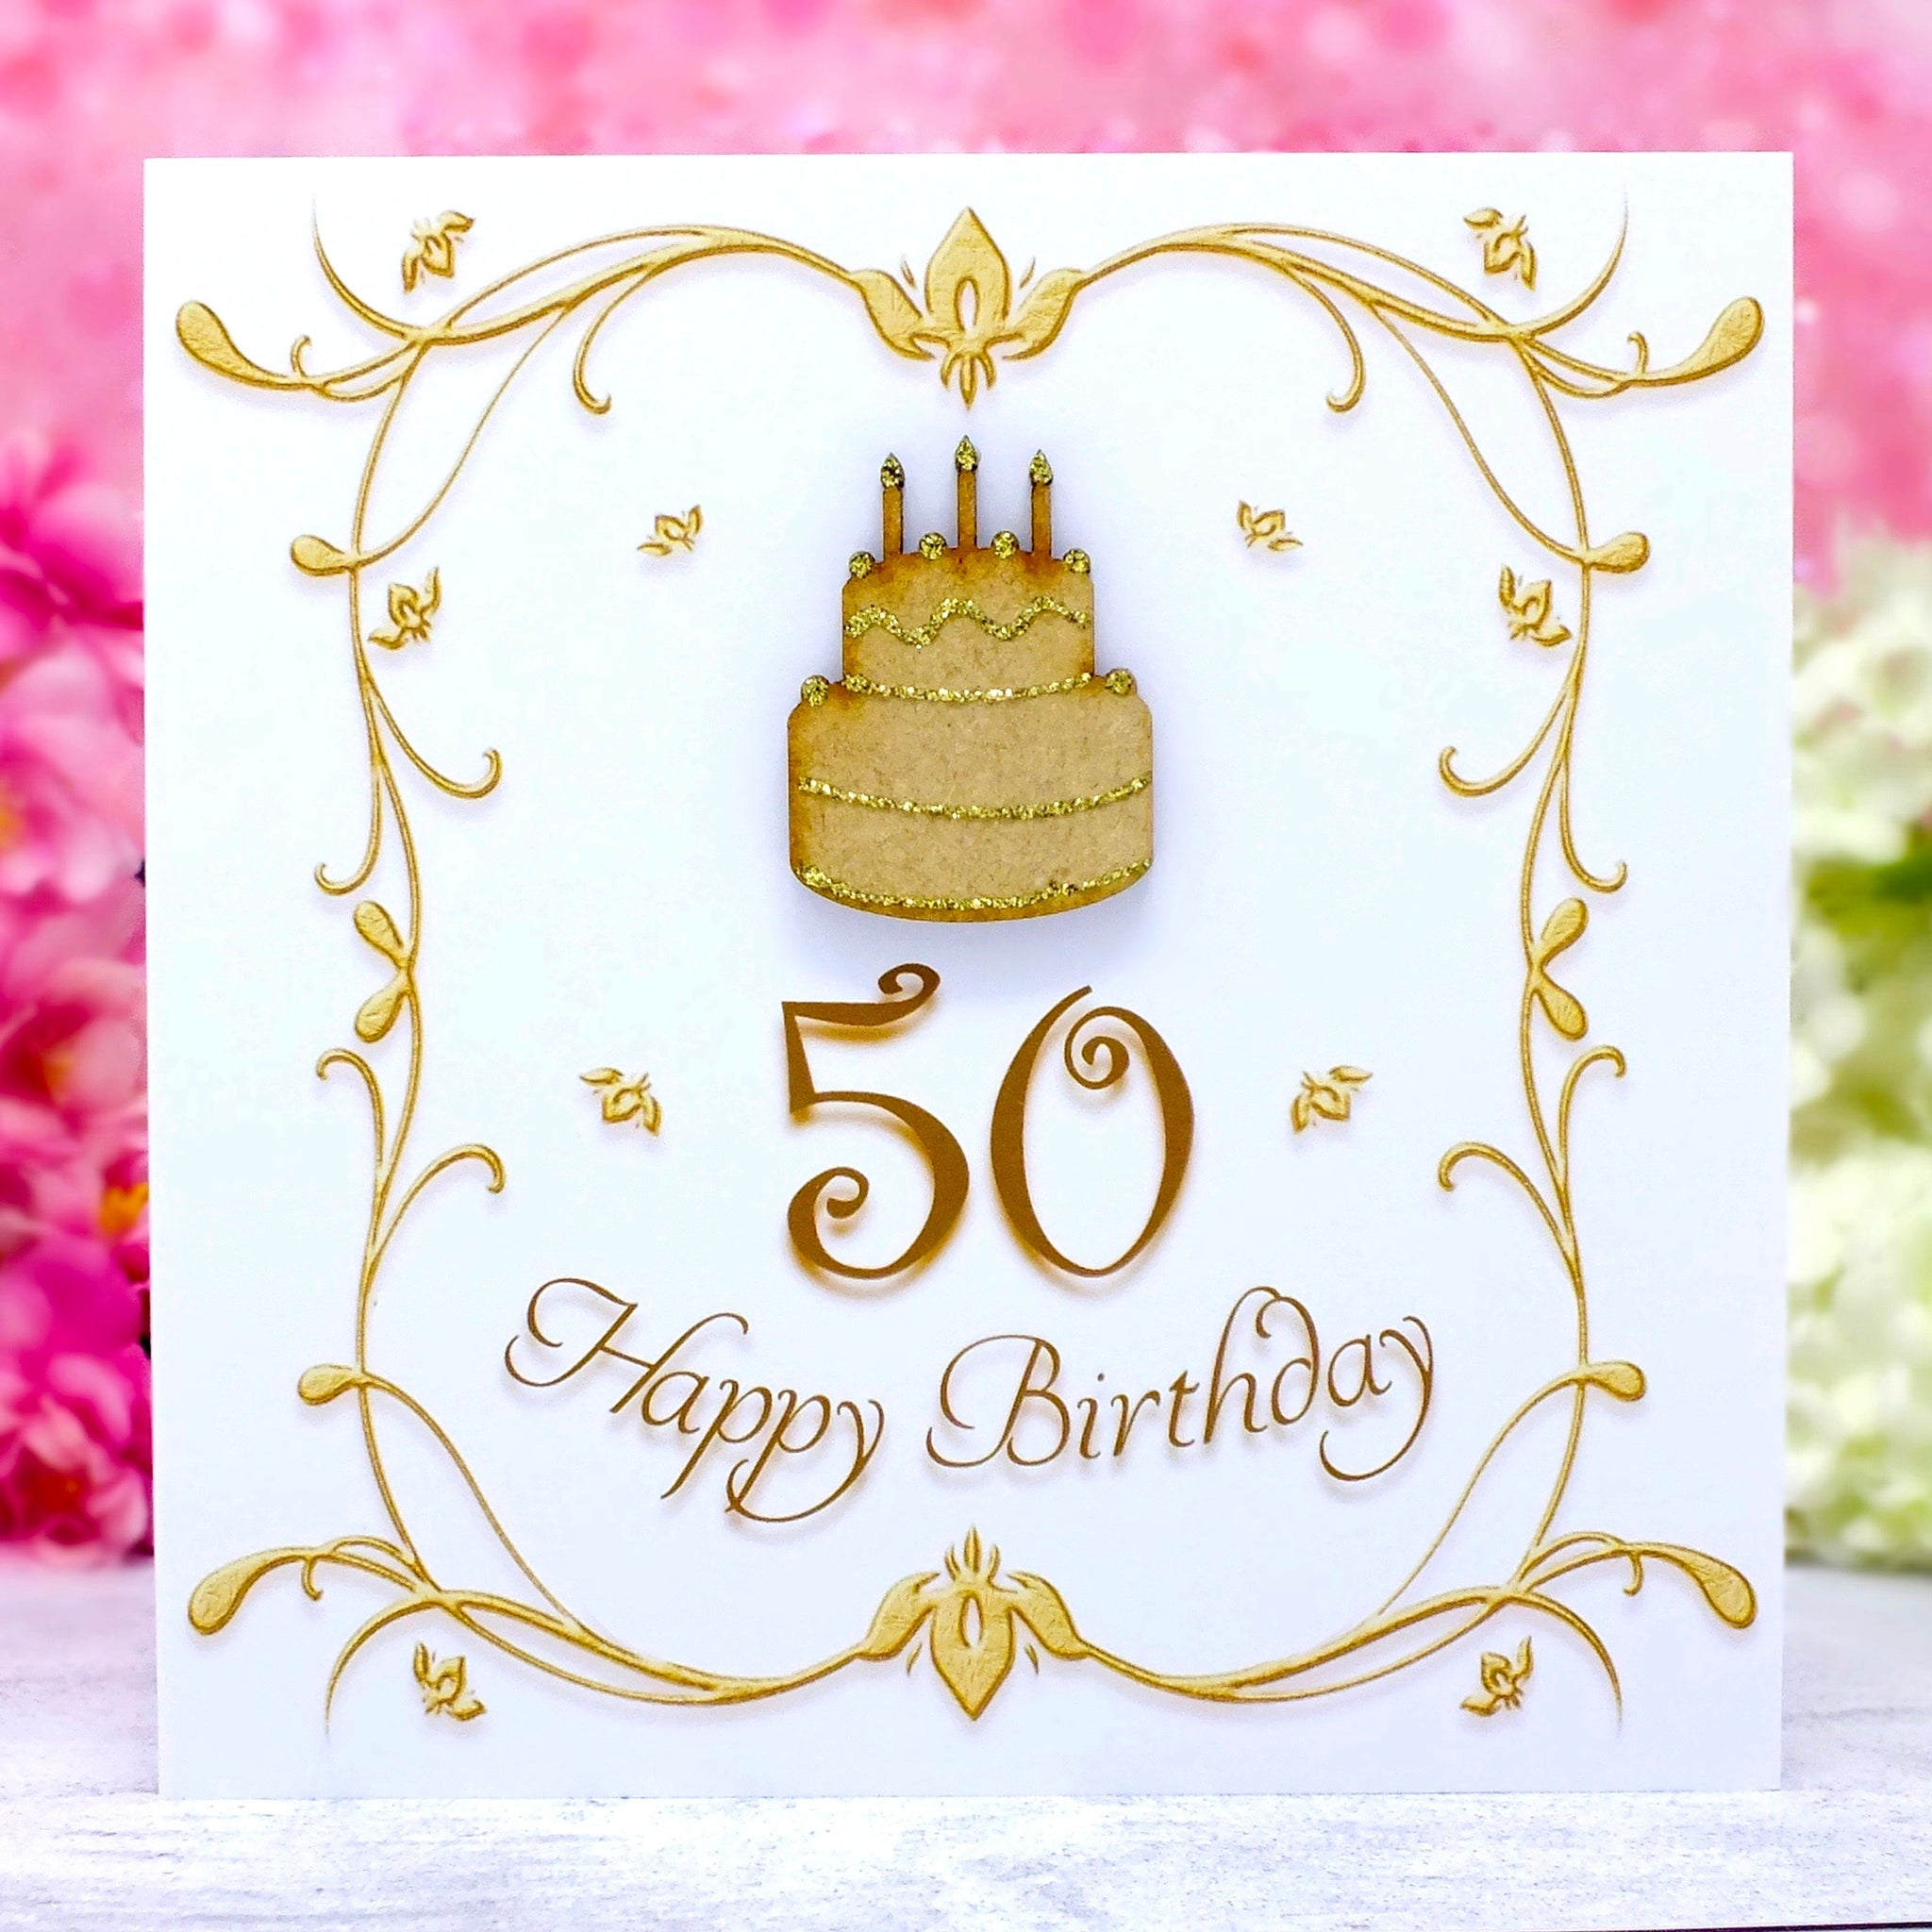 50th Birthday Card - Wooden Birthday Cake Main